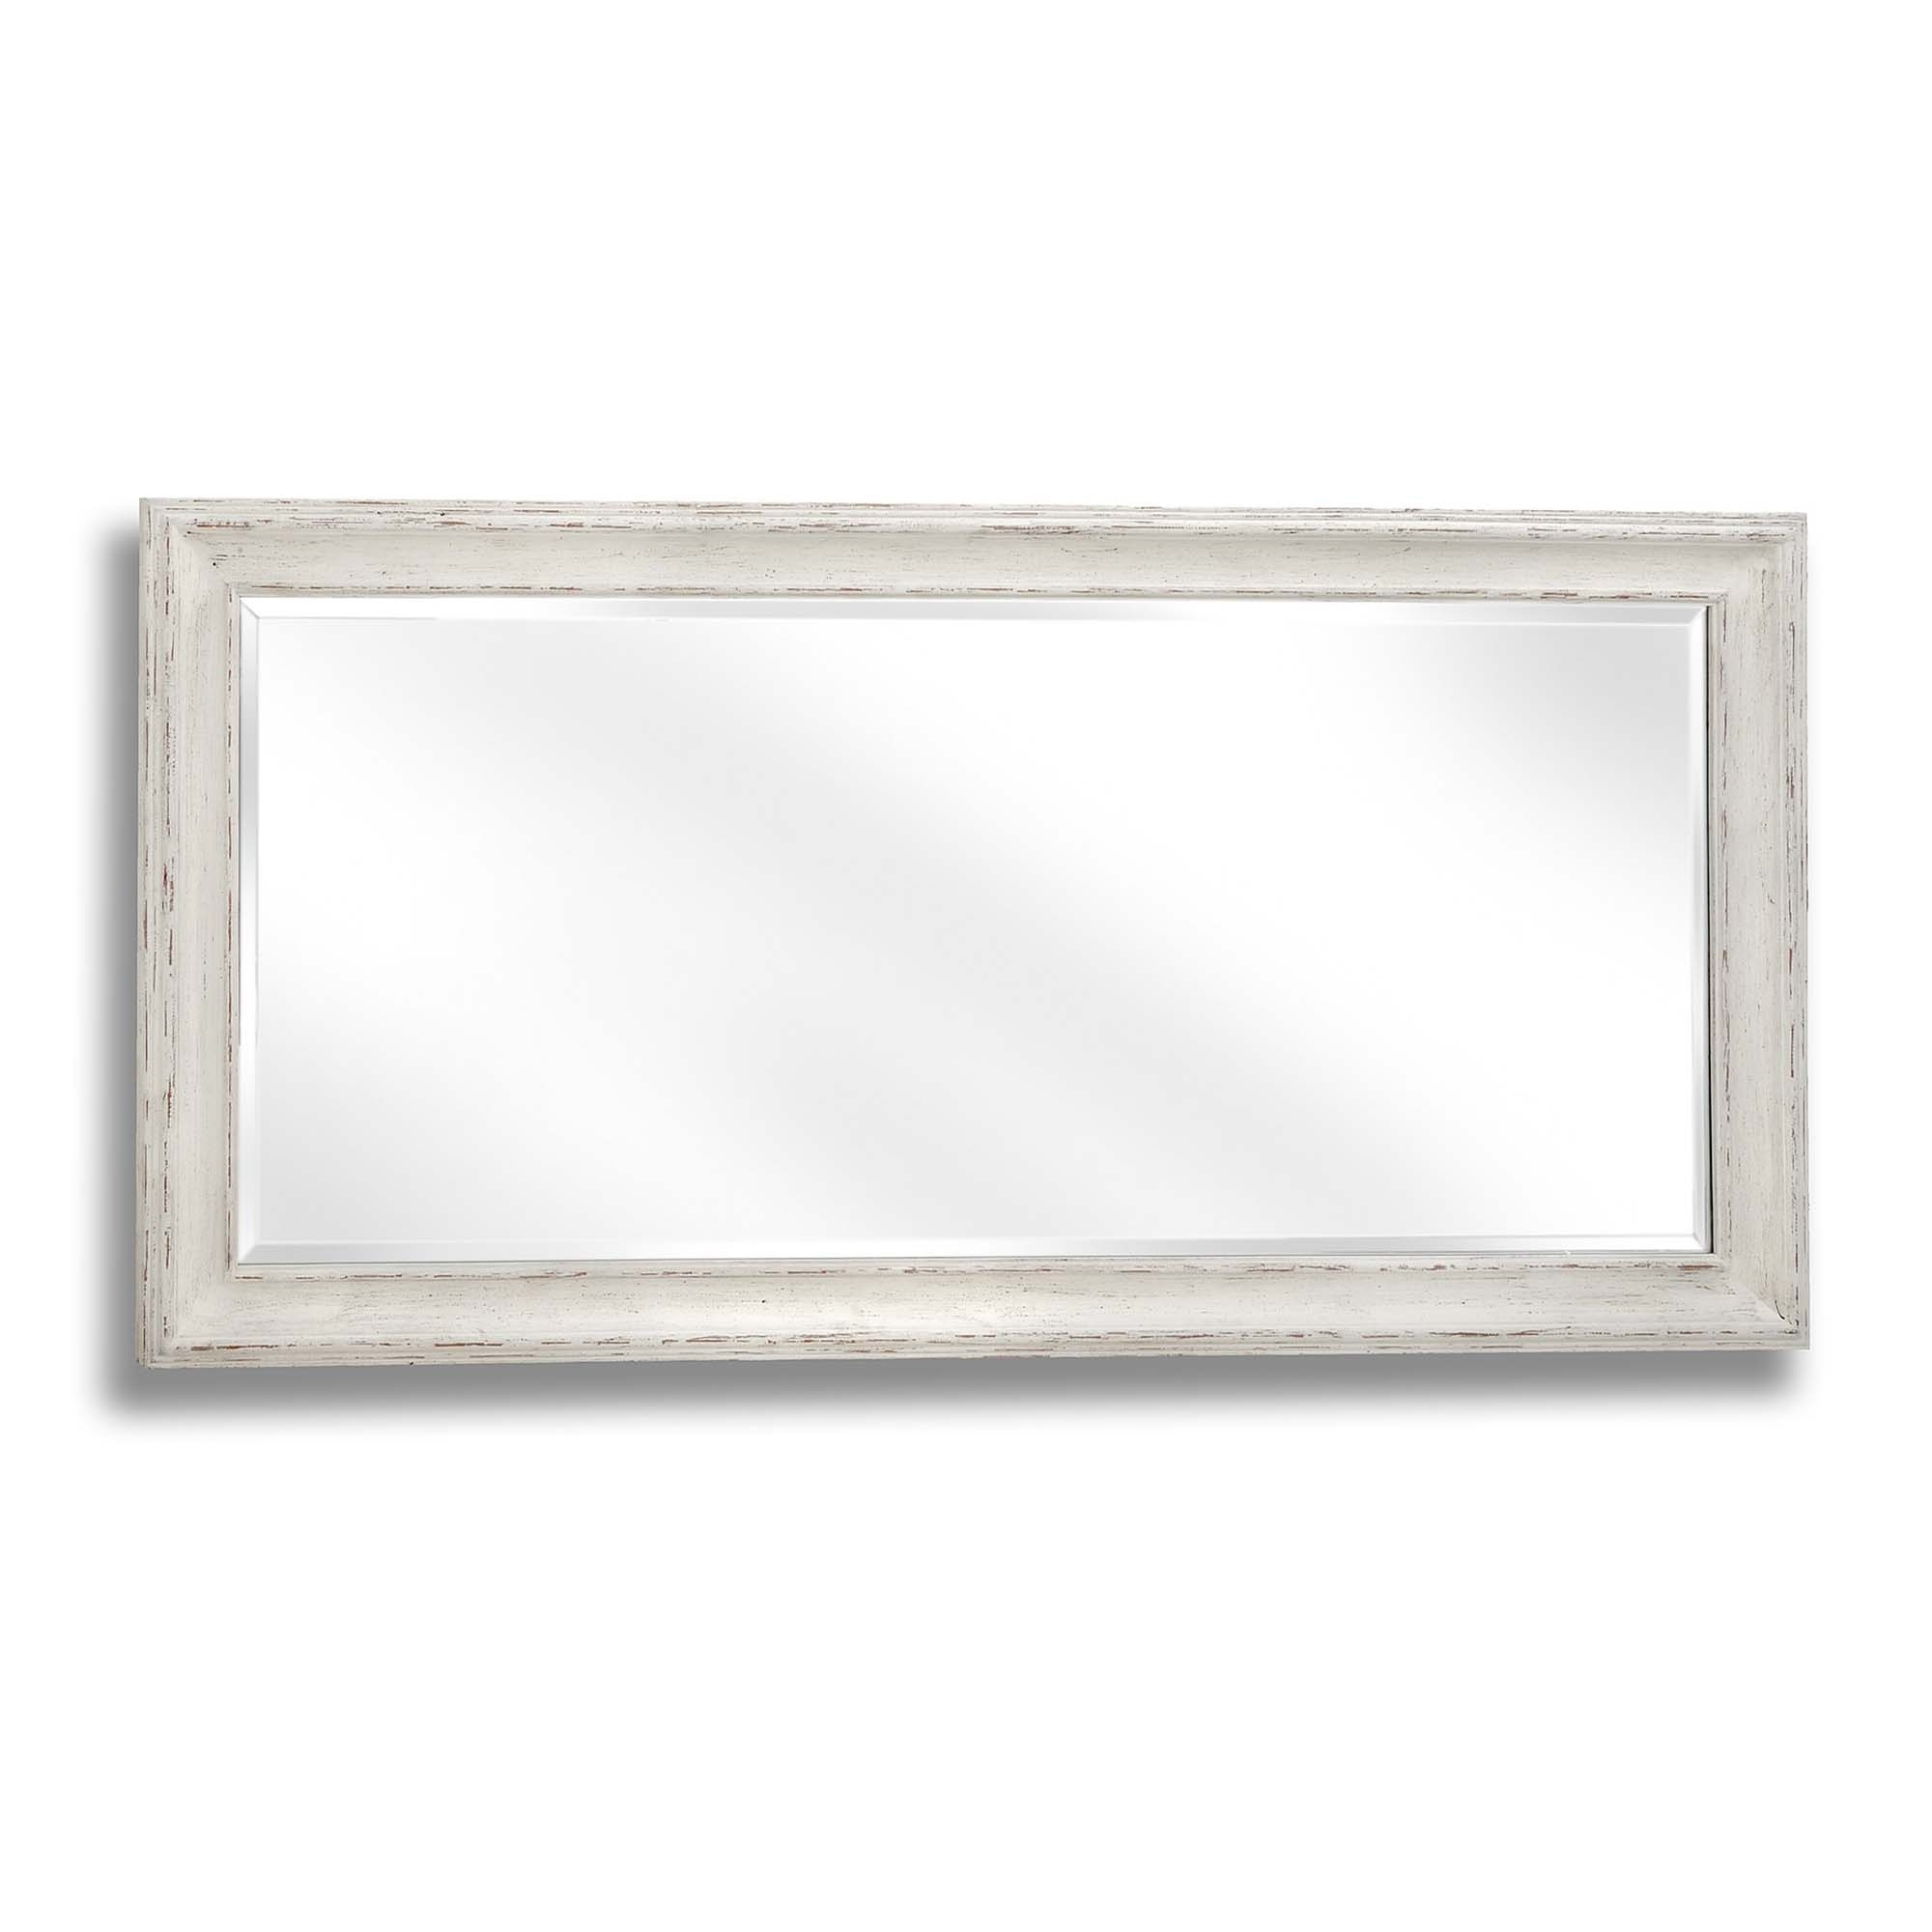 Most Recent Large Rectangular Wall Mirrors In Antique White Large Rectangular Wall Mirror (View 5 of 20)